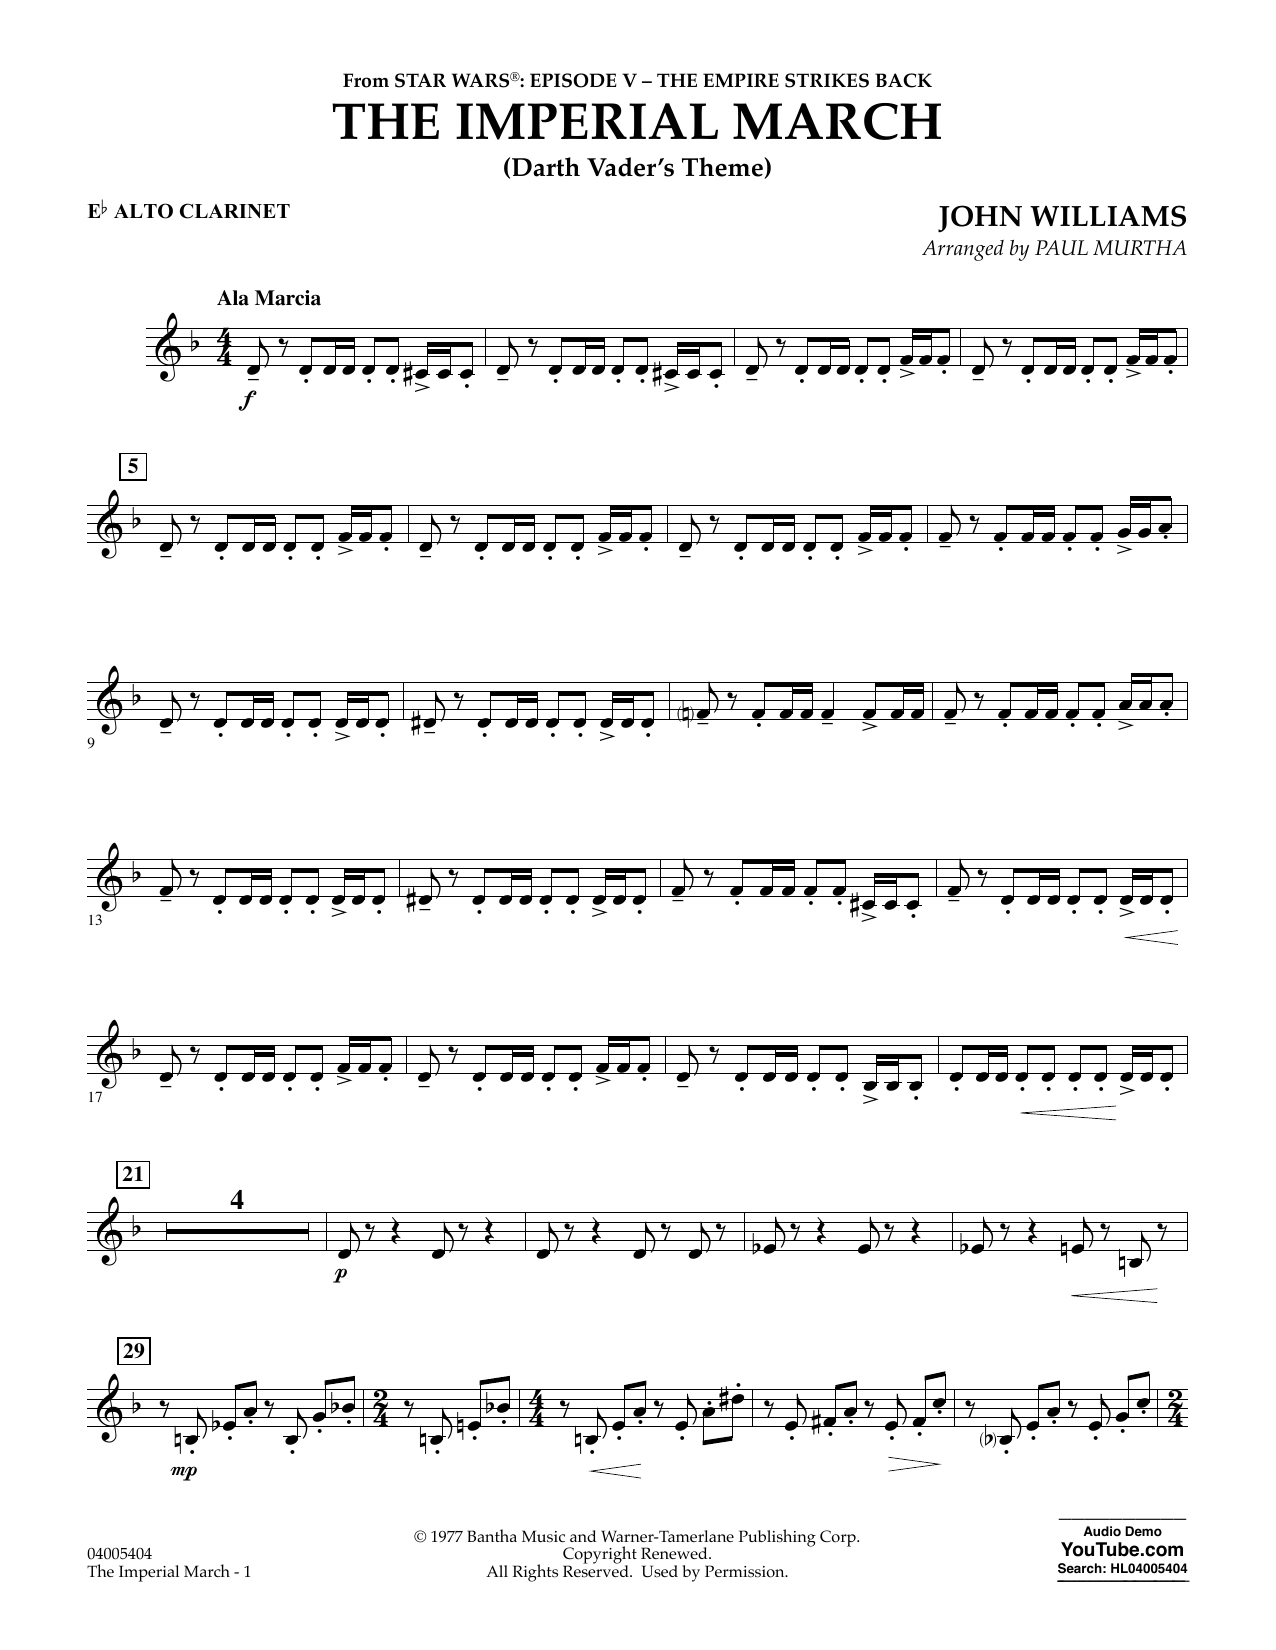 Paul Murtha The Imperial March (Darth Vader's Theme) - Eb Alto Clarinet sheet music notes and chords. Download Printable PDF.